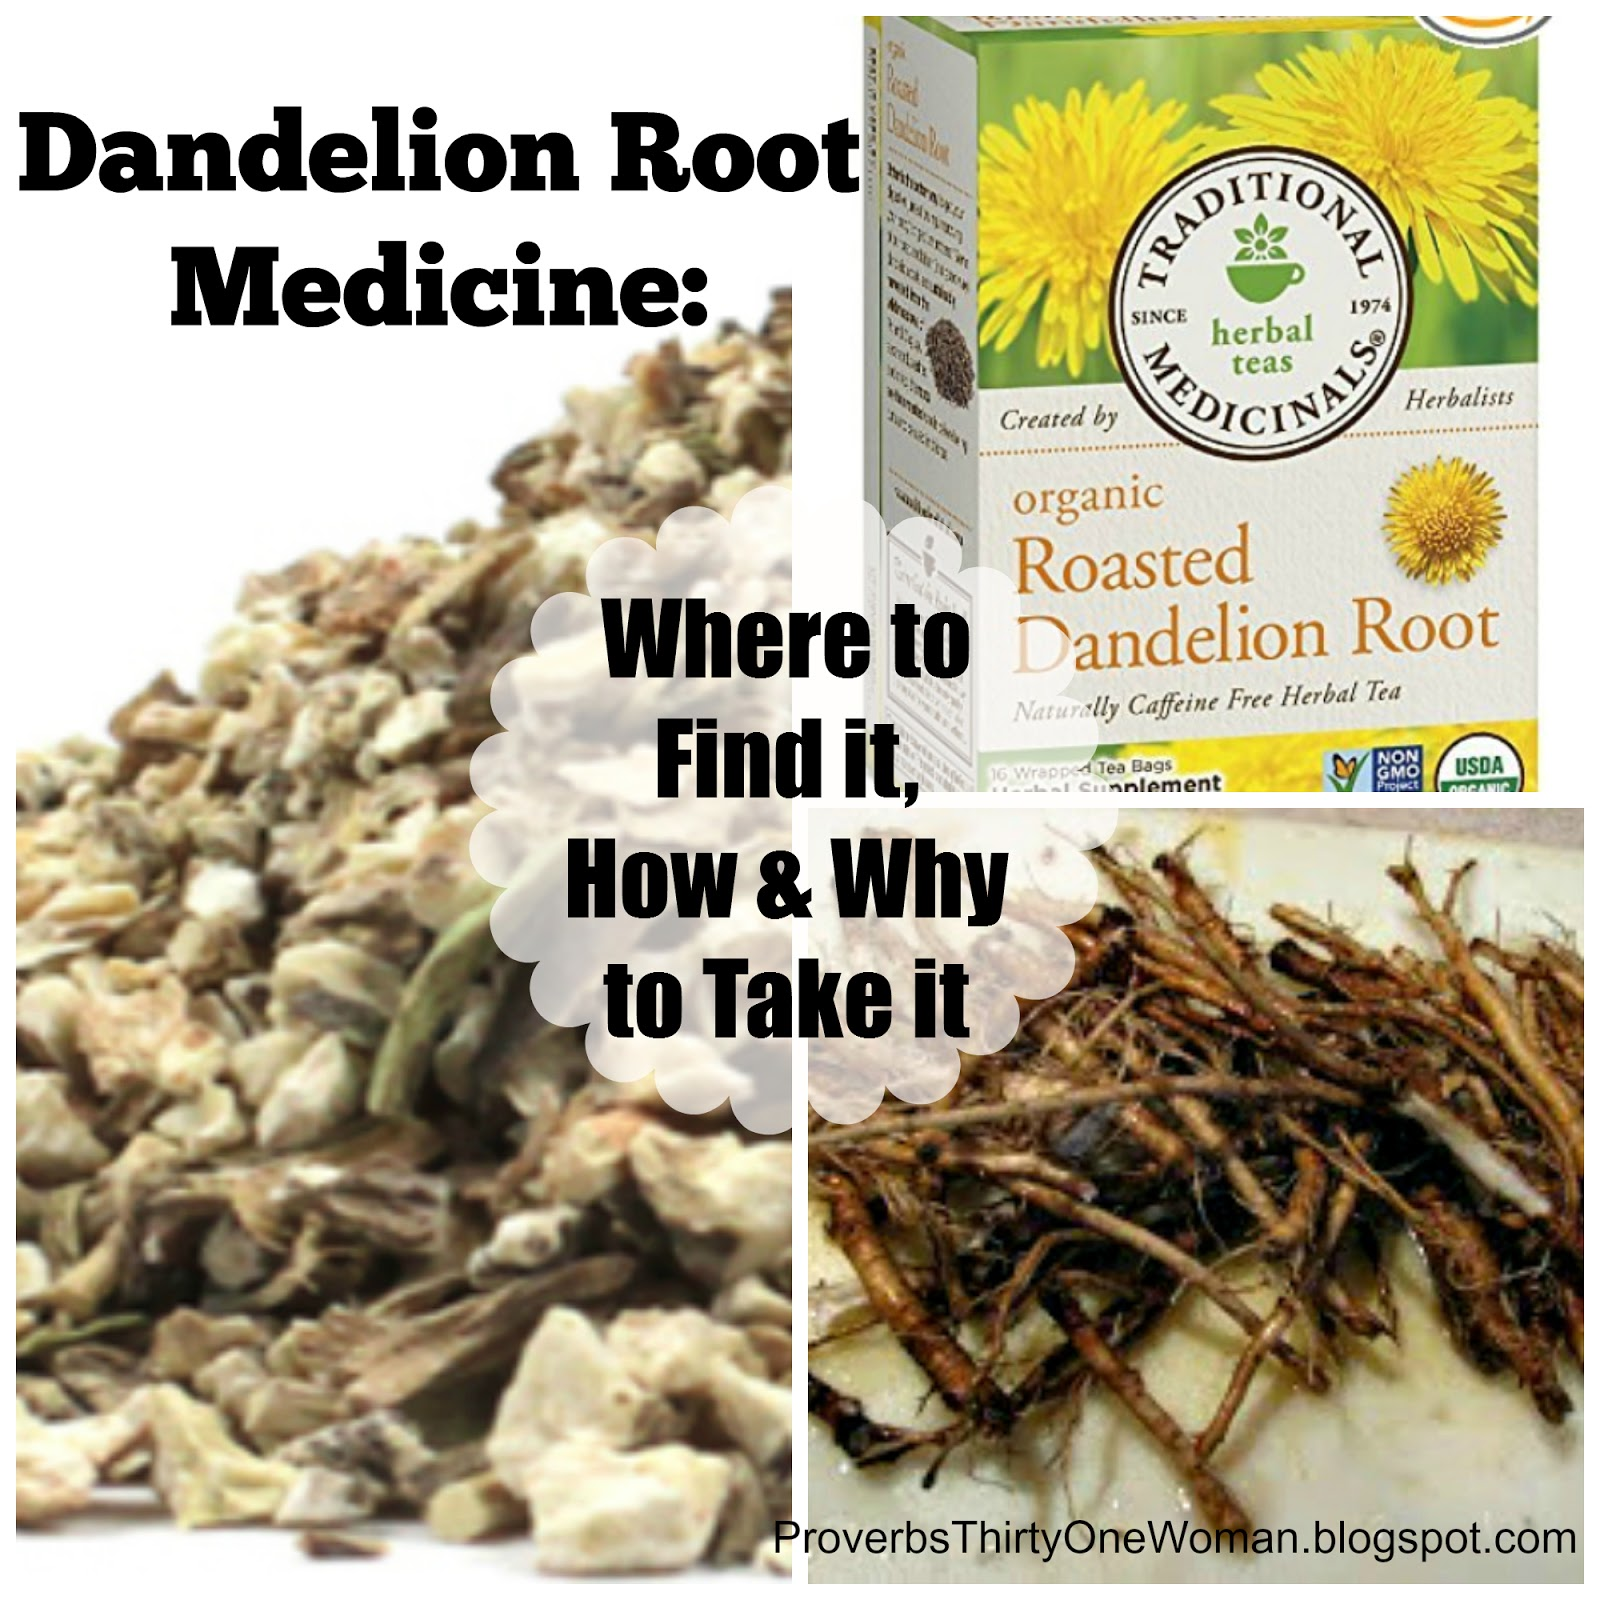 Dandelion root where to buy